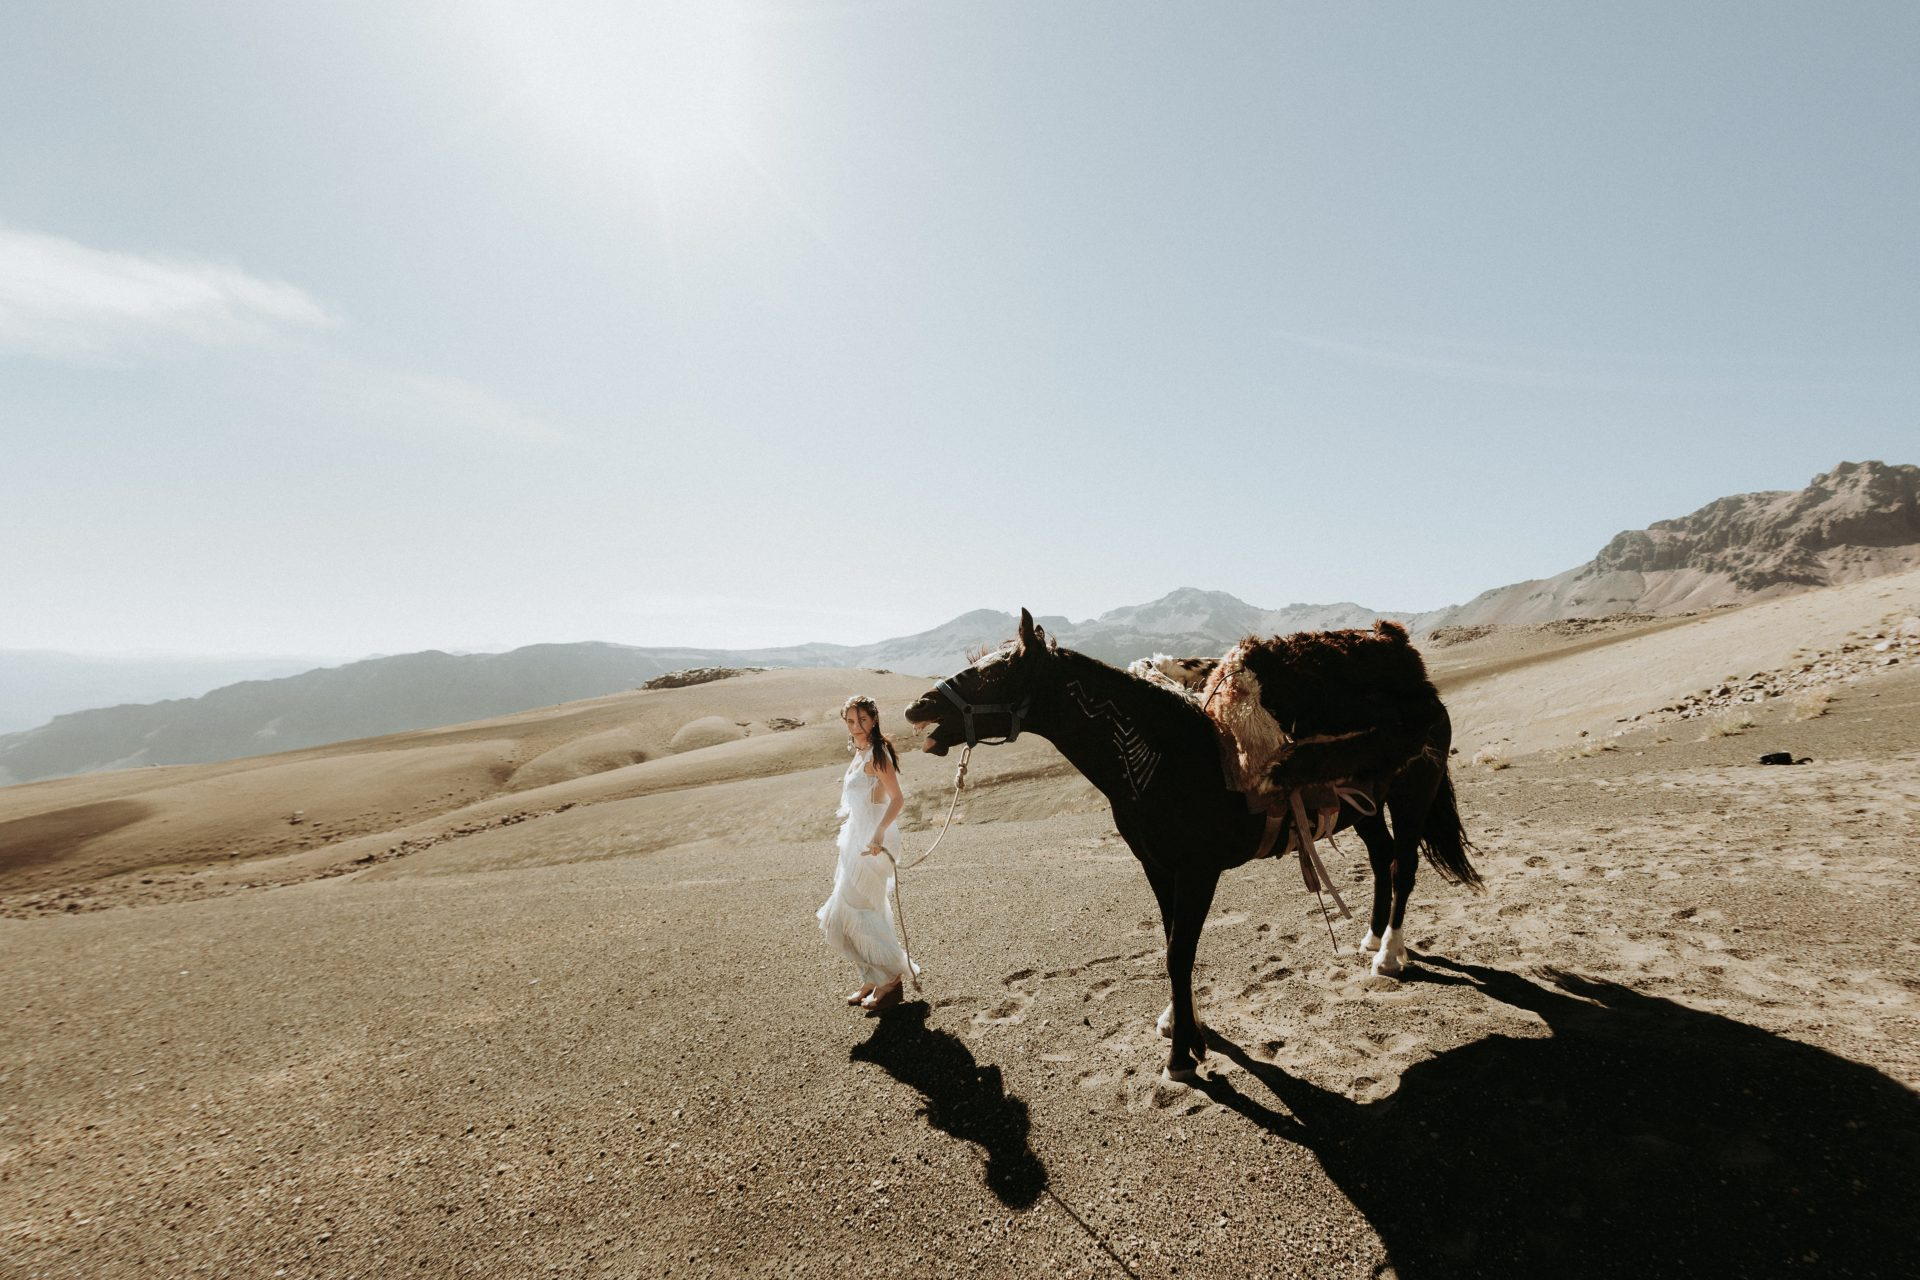 Adventure wedding in Chile with Horses